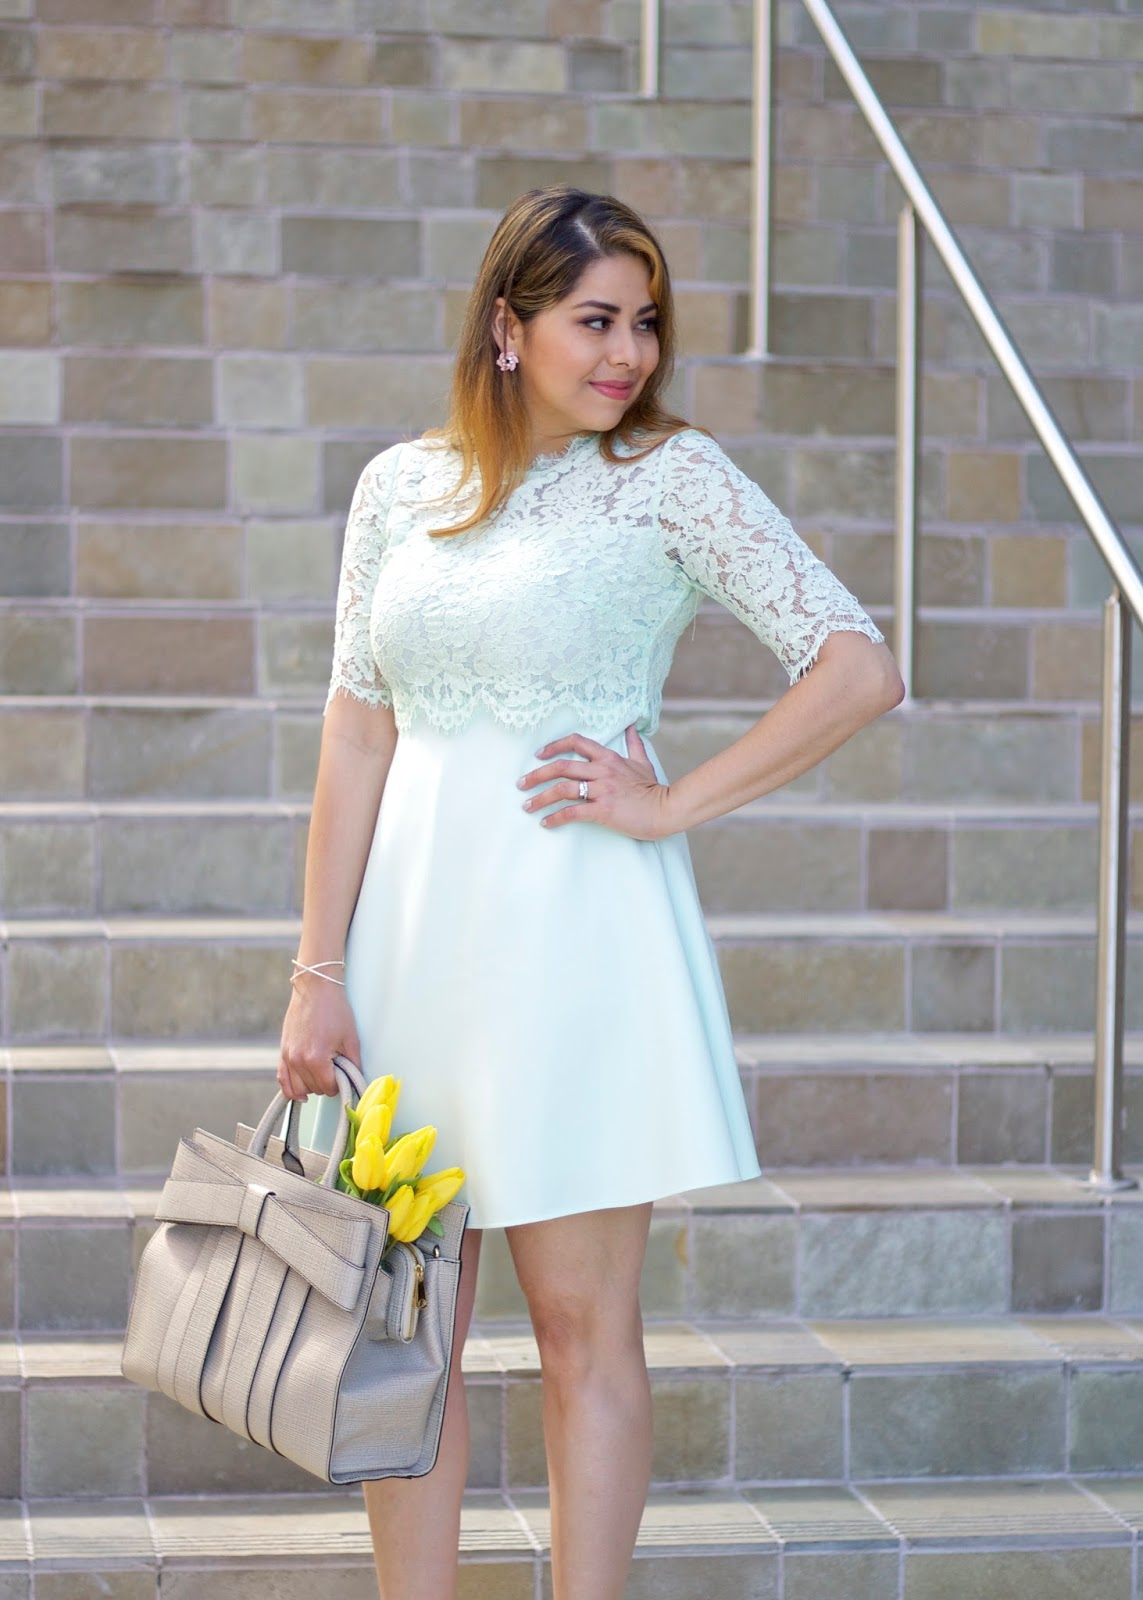 Spring Wedding guest look, what to wear to an elegant baby shower, girly outfit